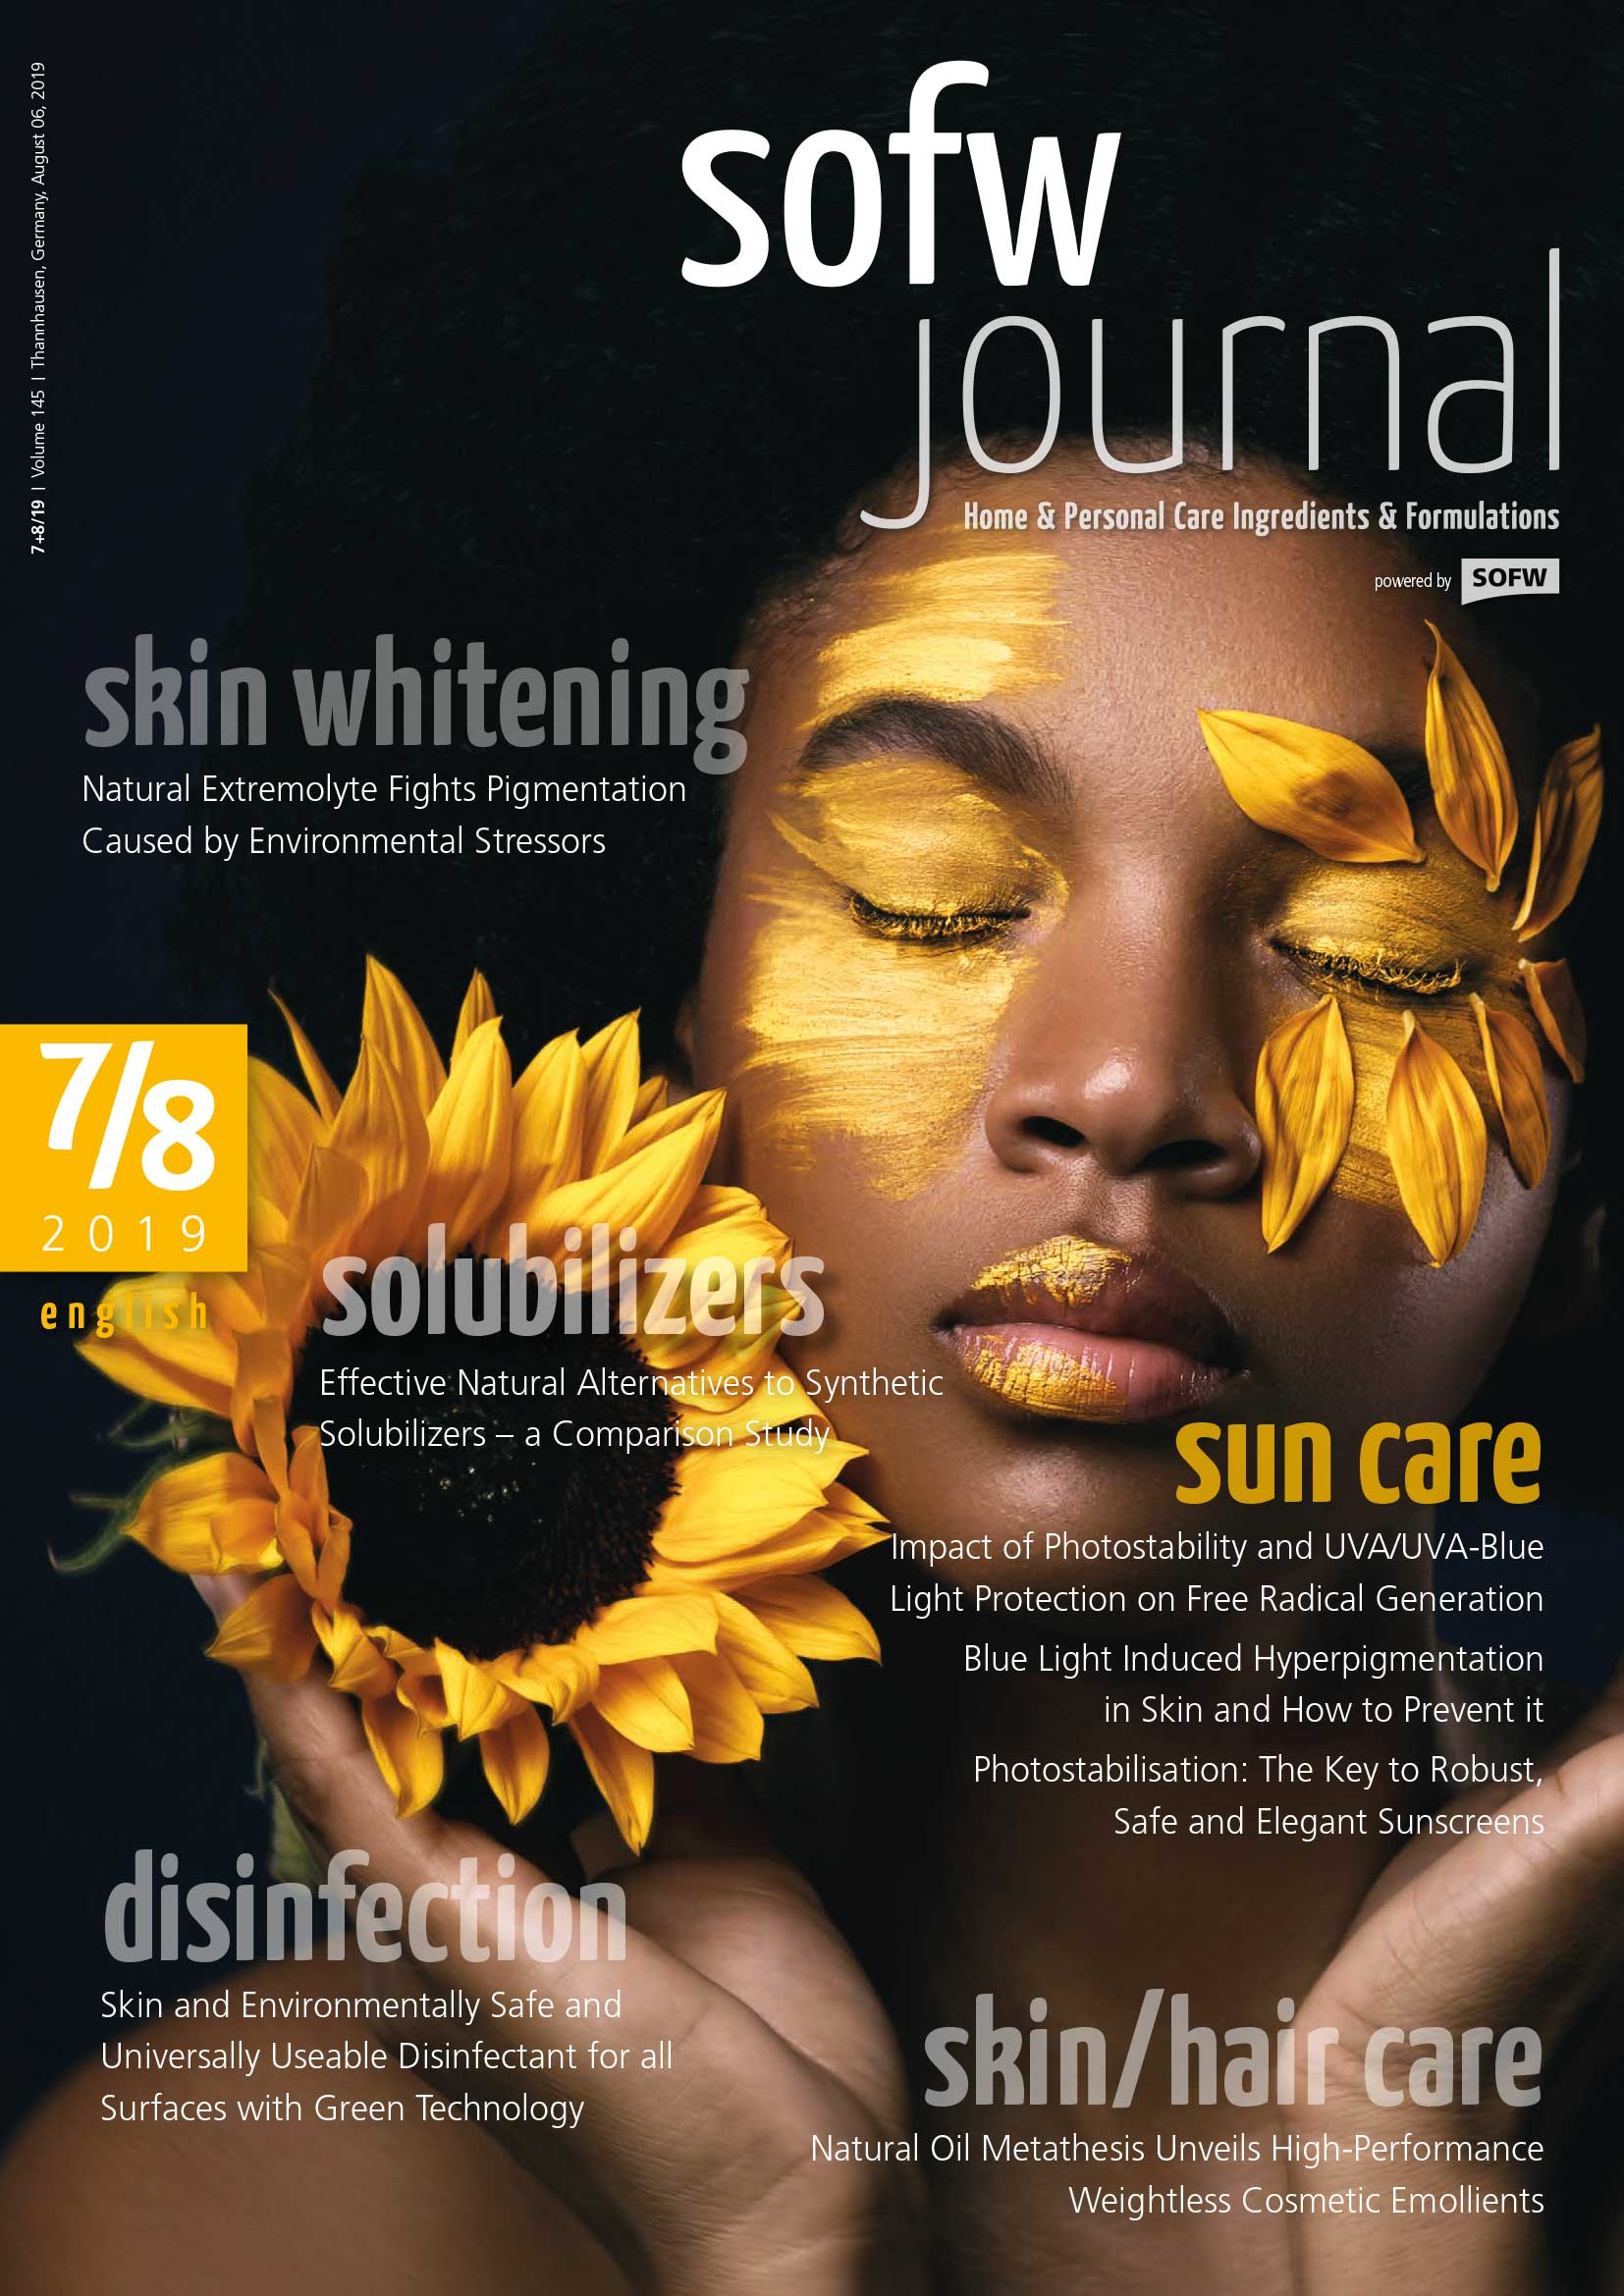 sofwjournal_en_2019_07_cover